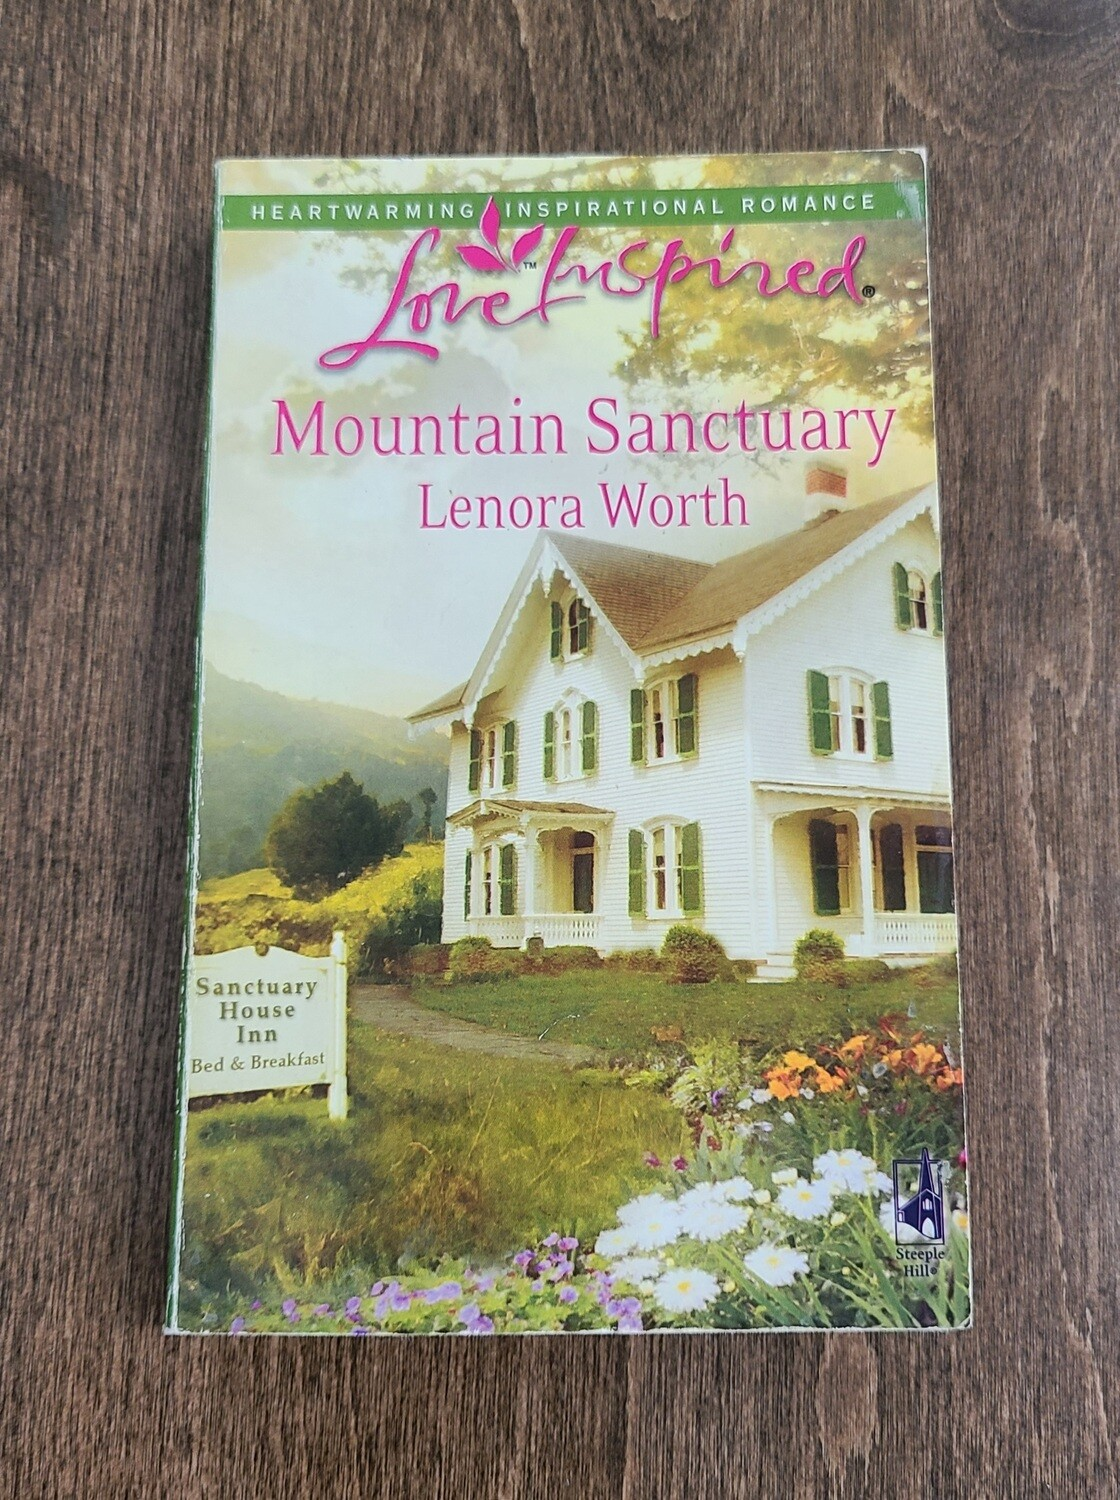 Mountain Sanctuary by Lenora Worth